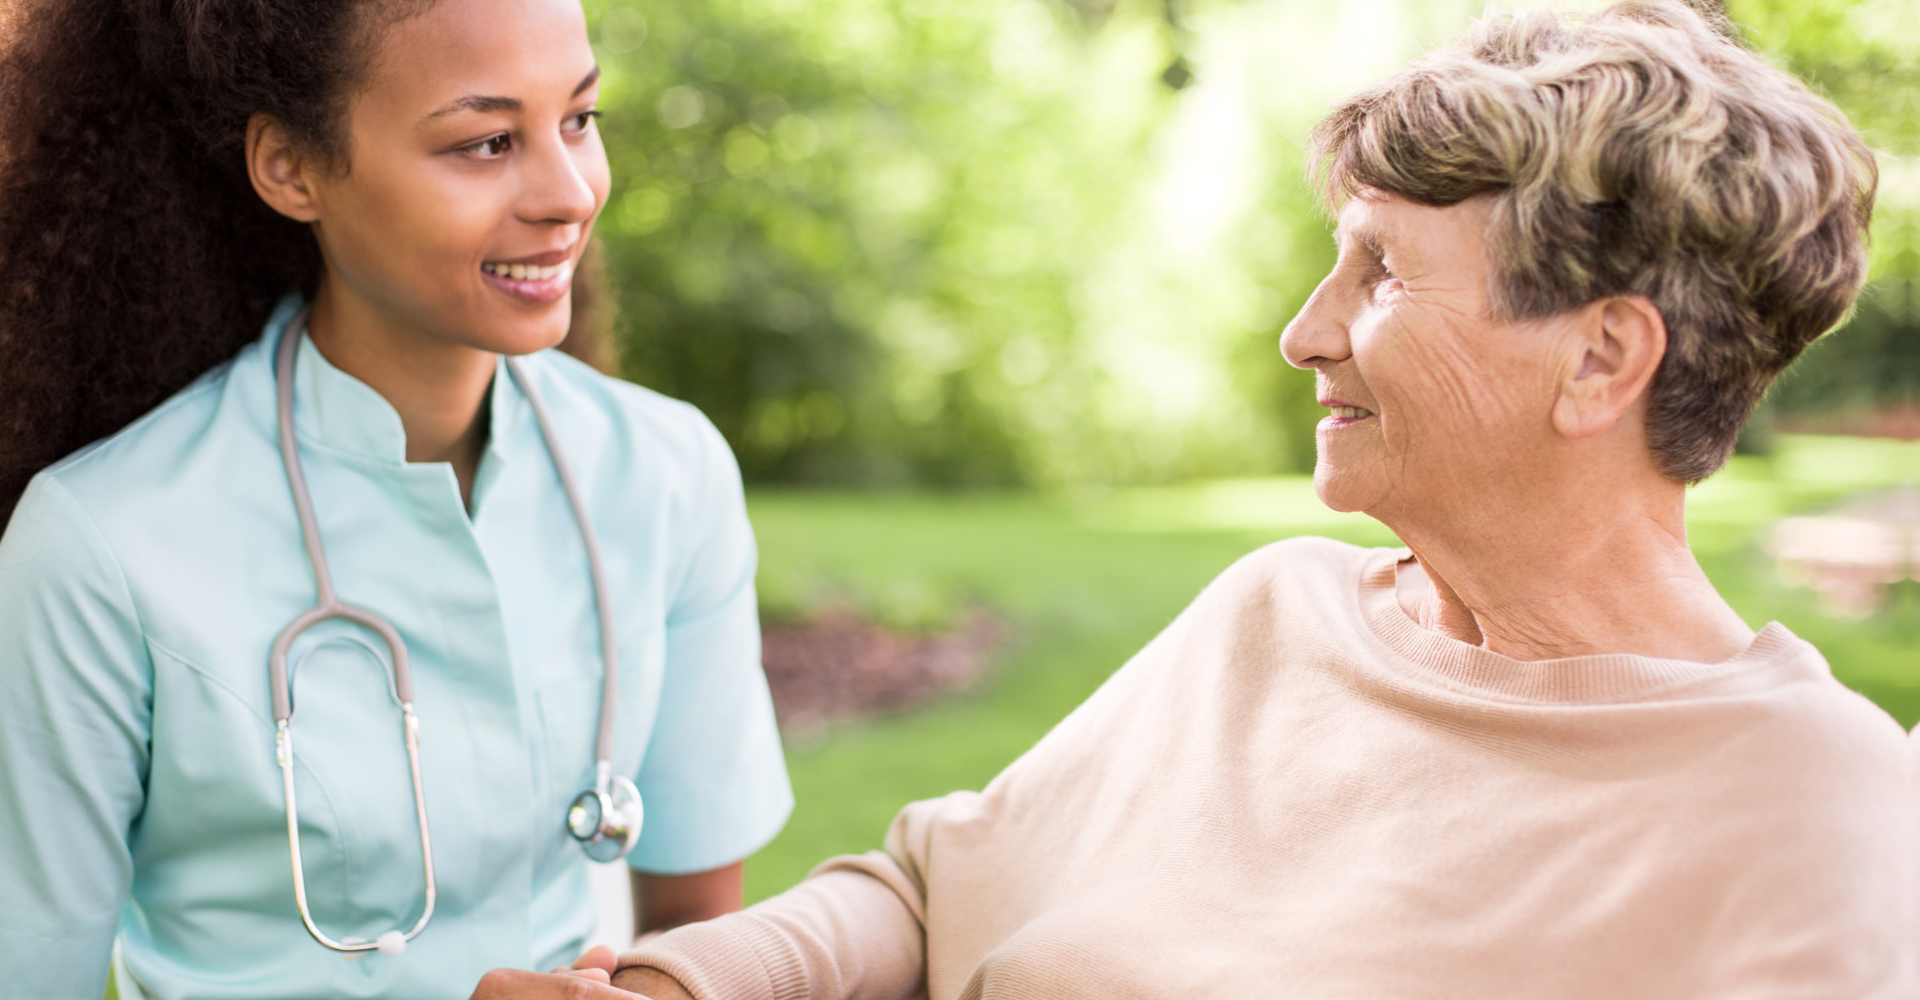 Caregiver and Senior Women facing each other while smiling